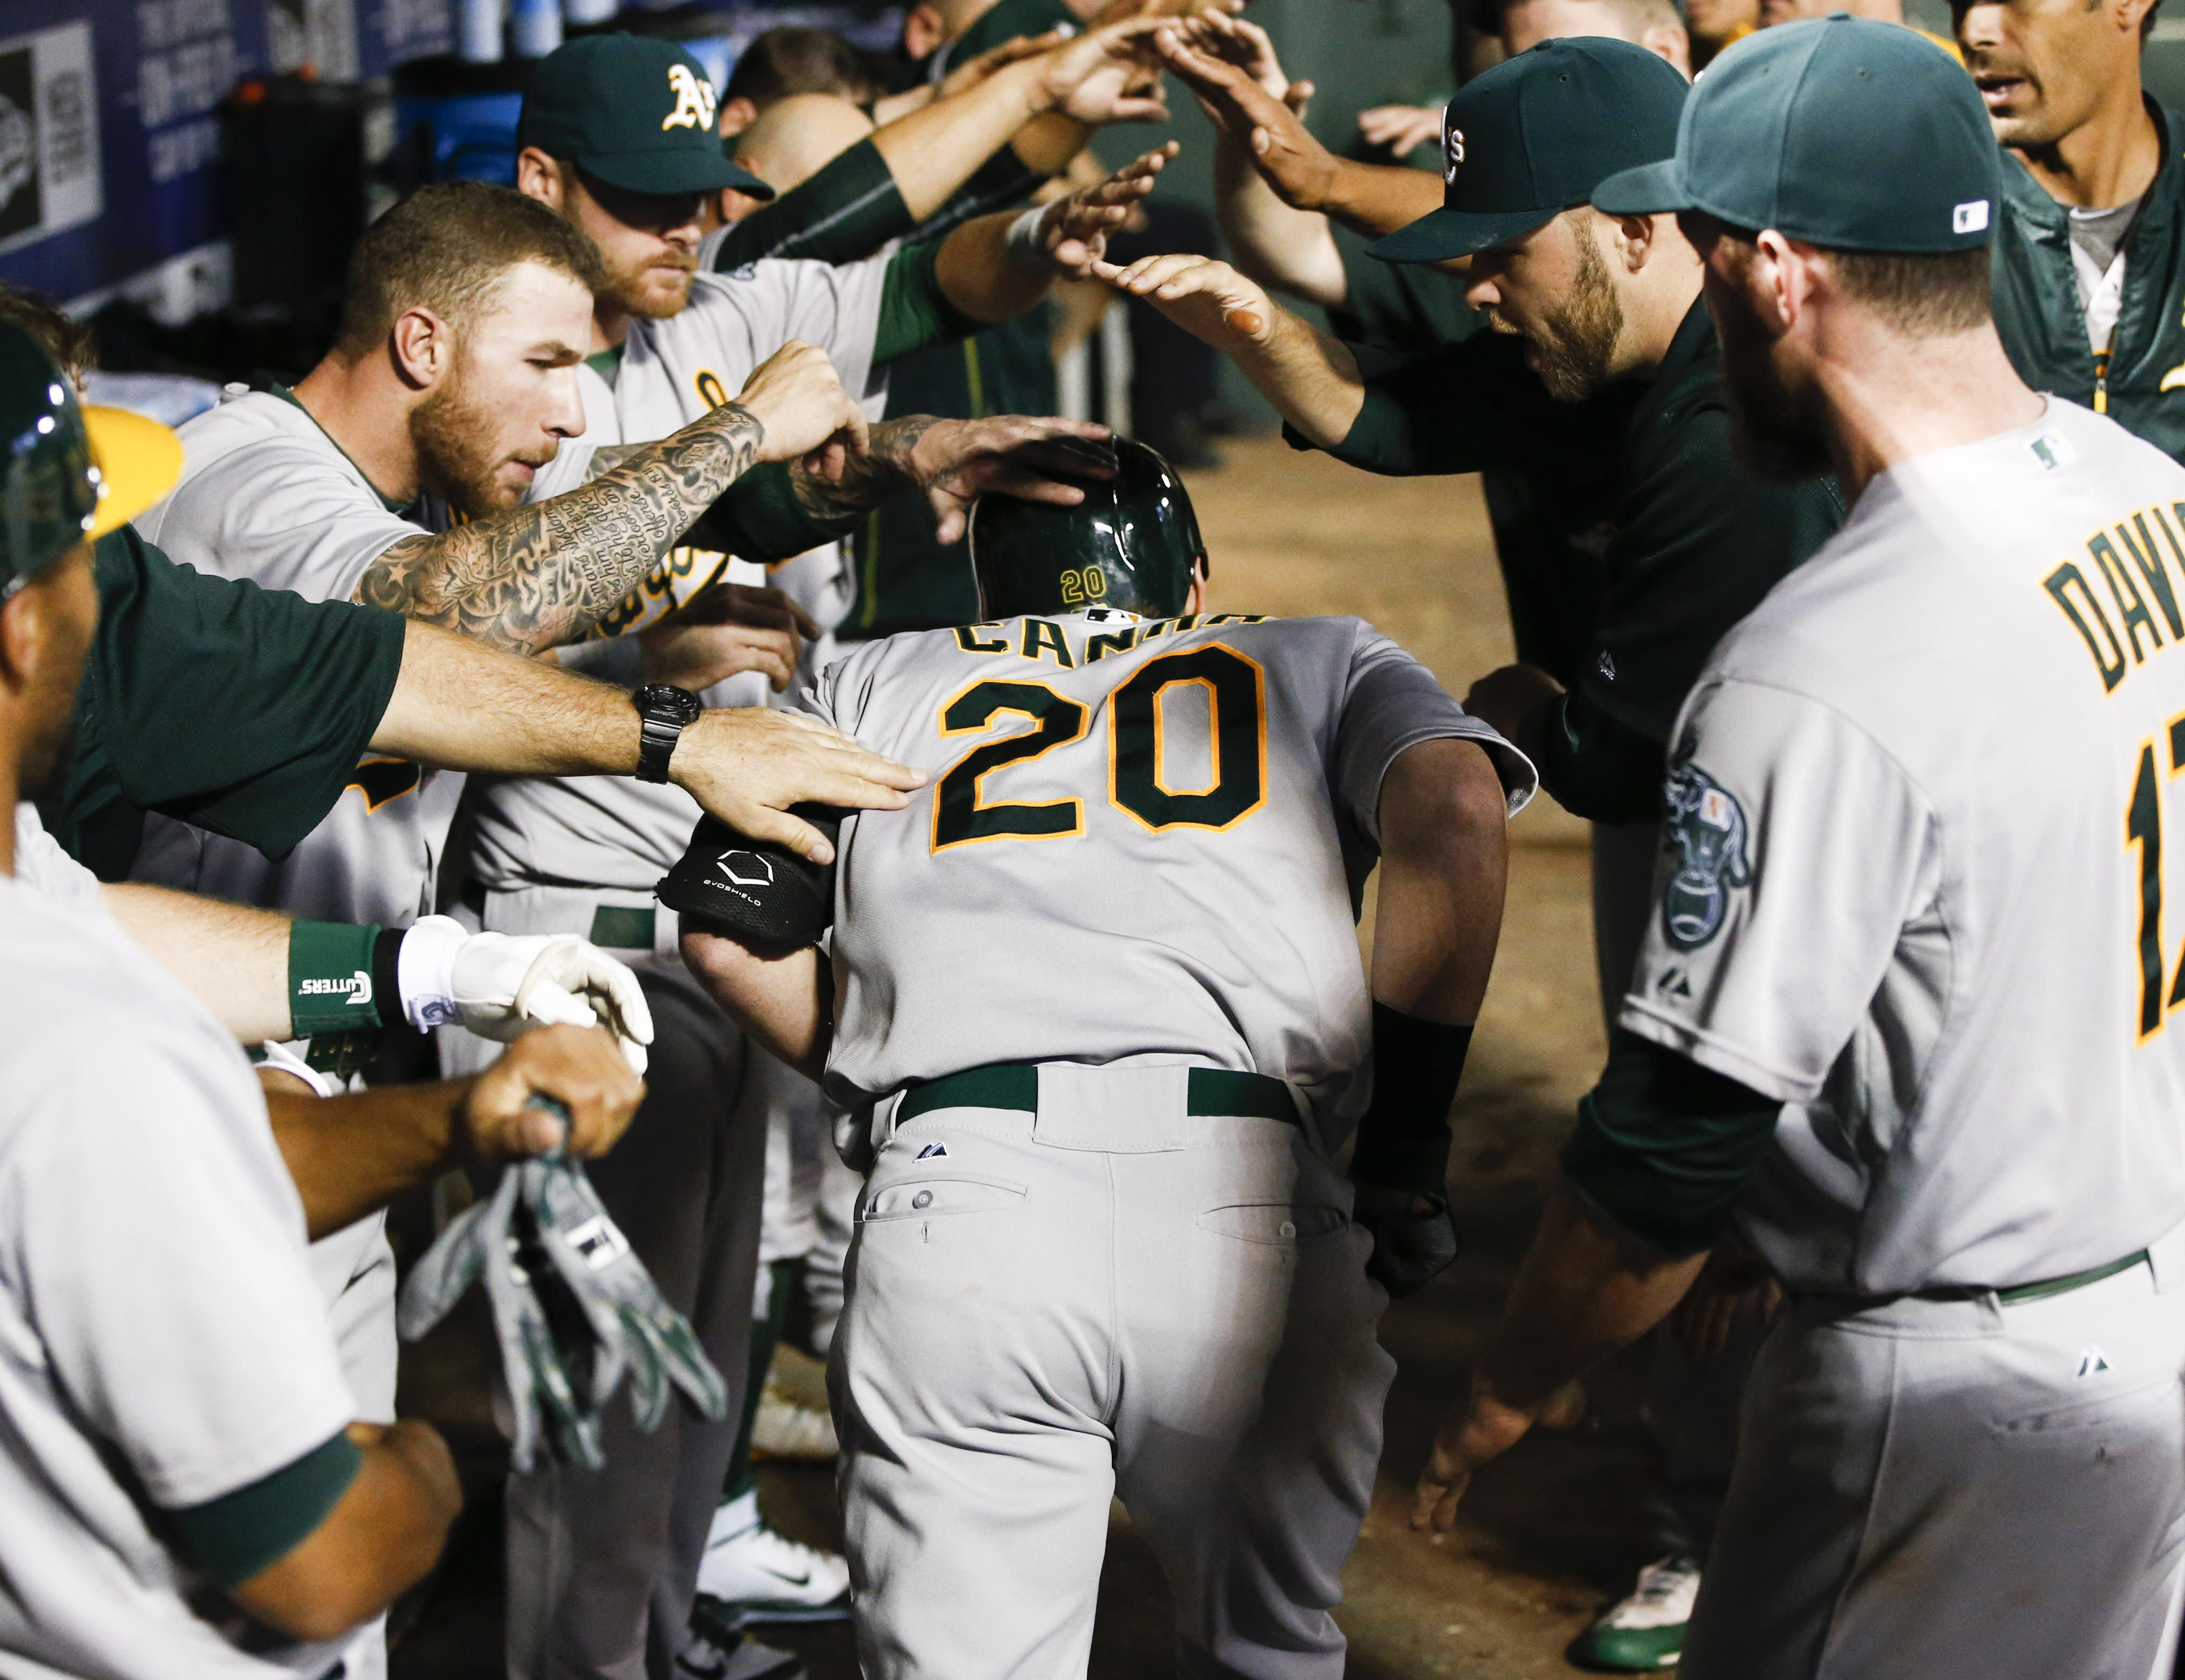 Canha leads 7-run 8th inning for A's in 7-5 win over Rangers